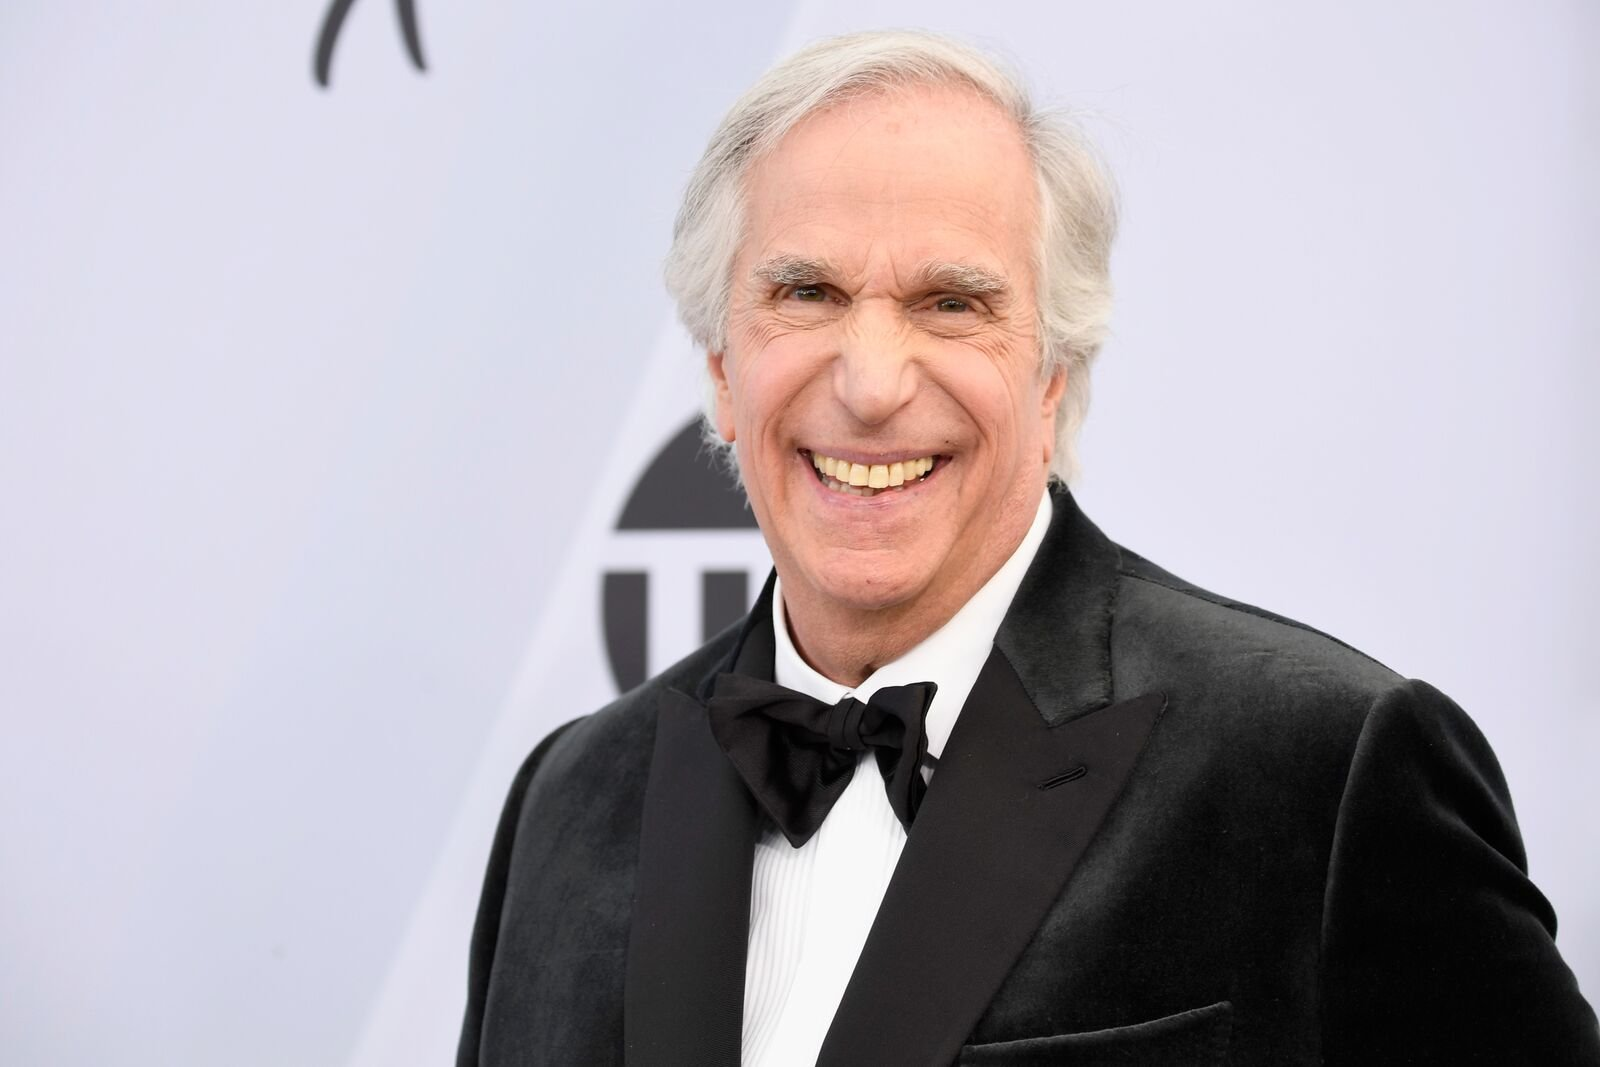 Henry Winkler at the Actors Guild Awards, 2019. | Source: Getty Images